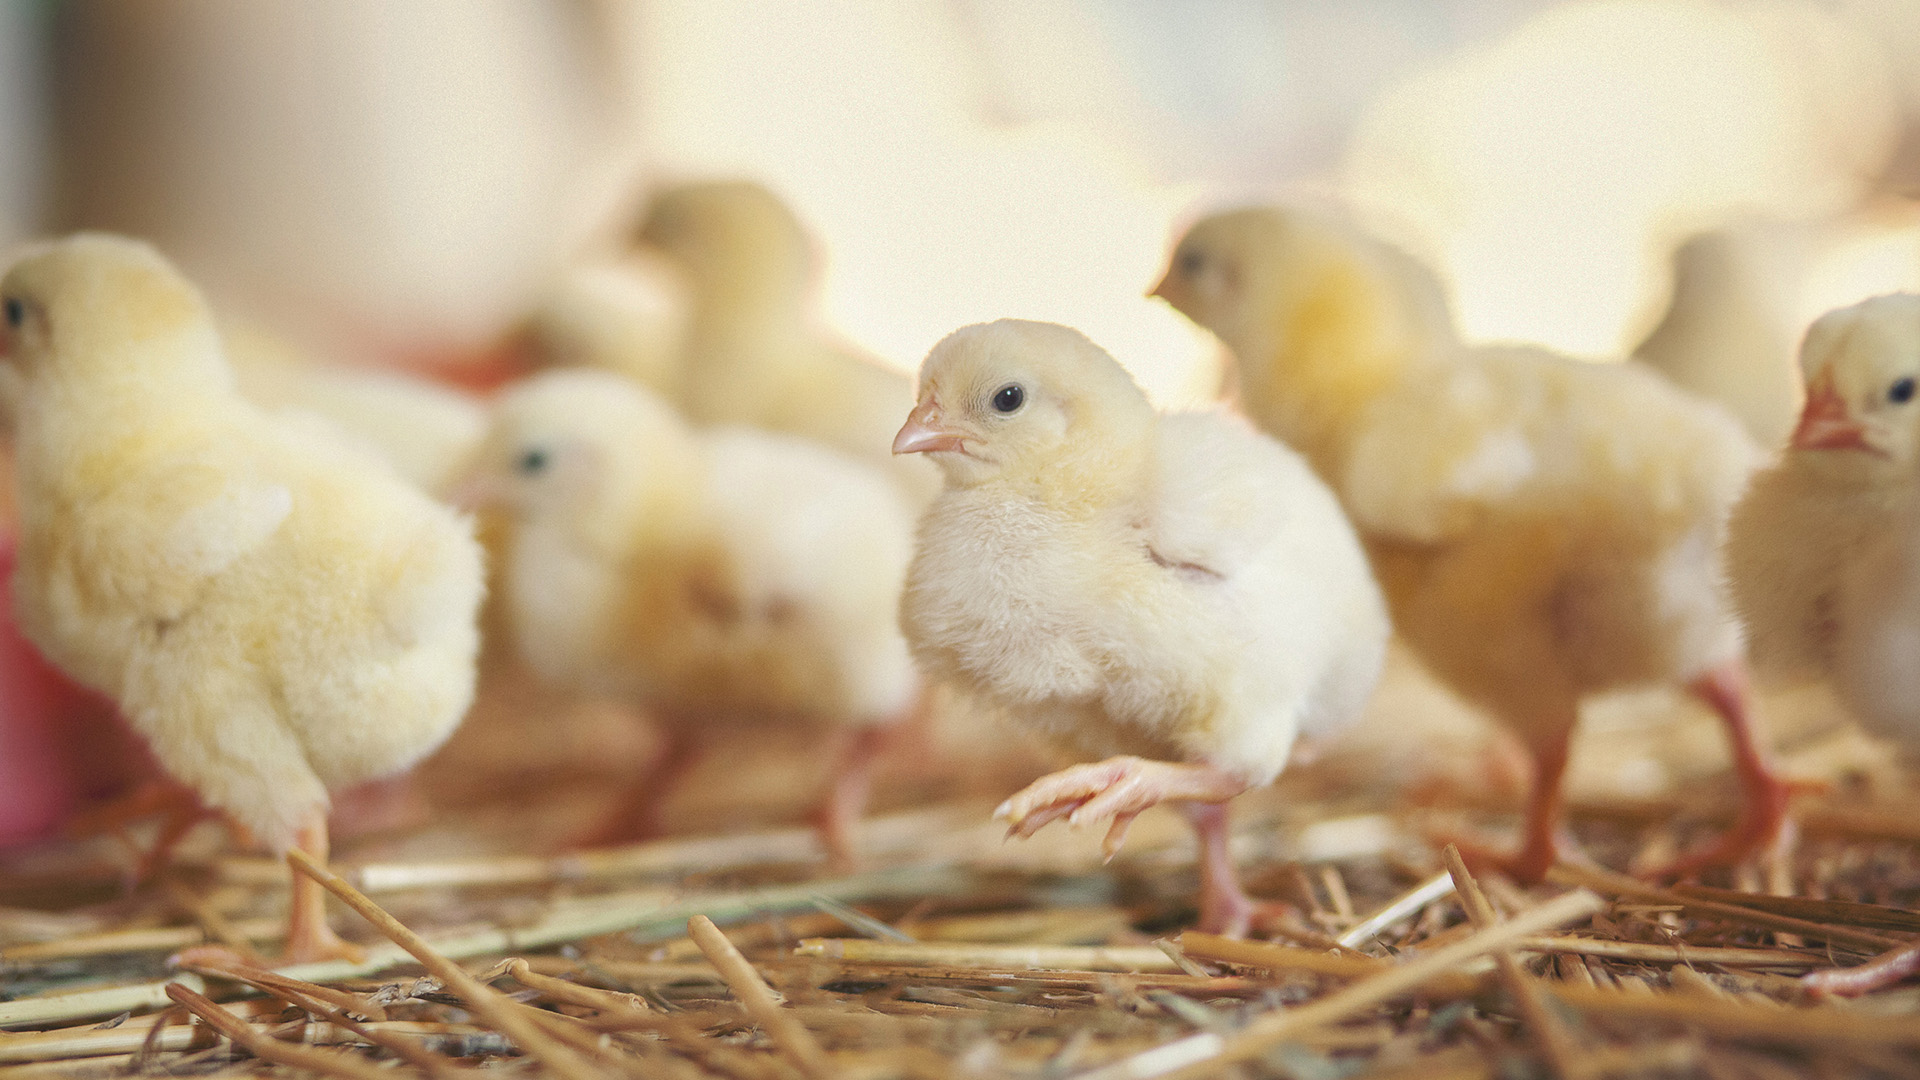 Several little yellow chicks at a farm